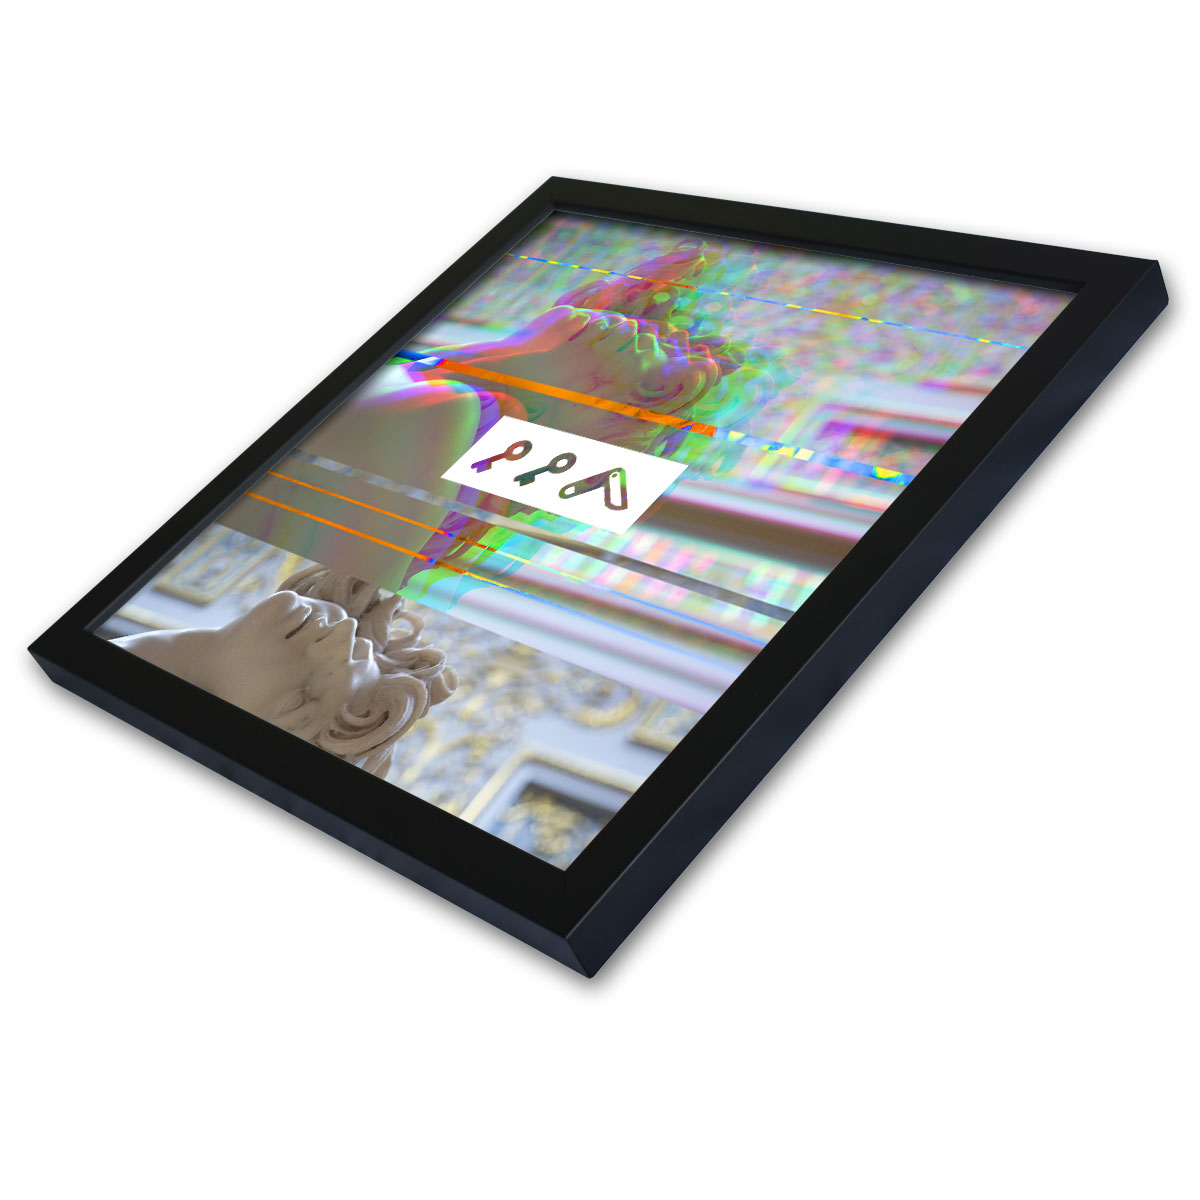 CHIVALRY IS DEAD glitch statue framed graphic prints